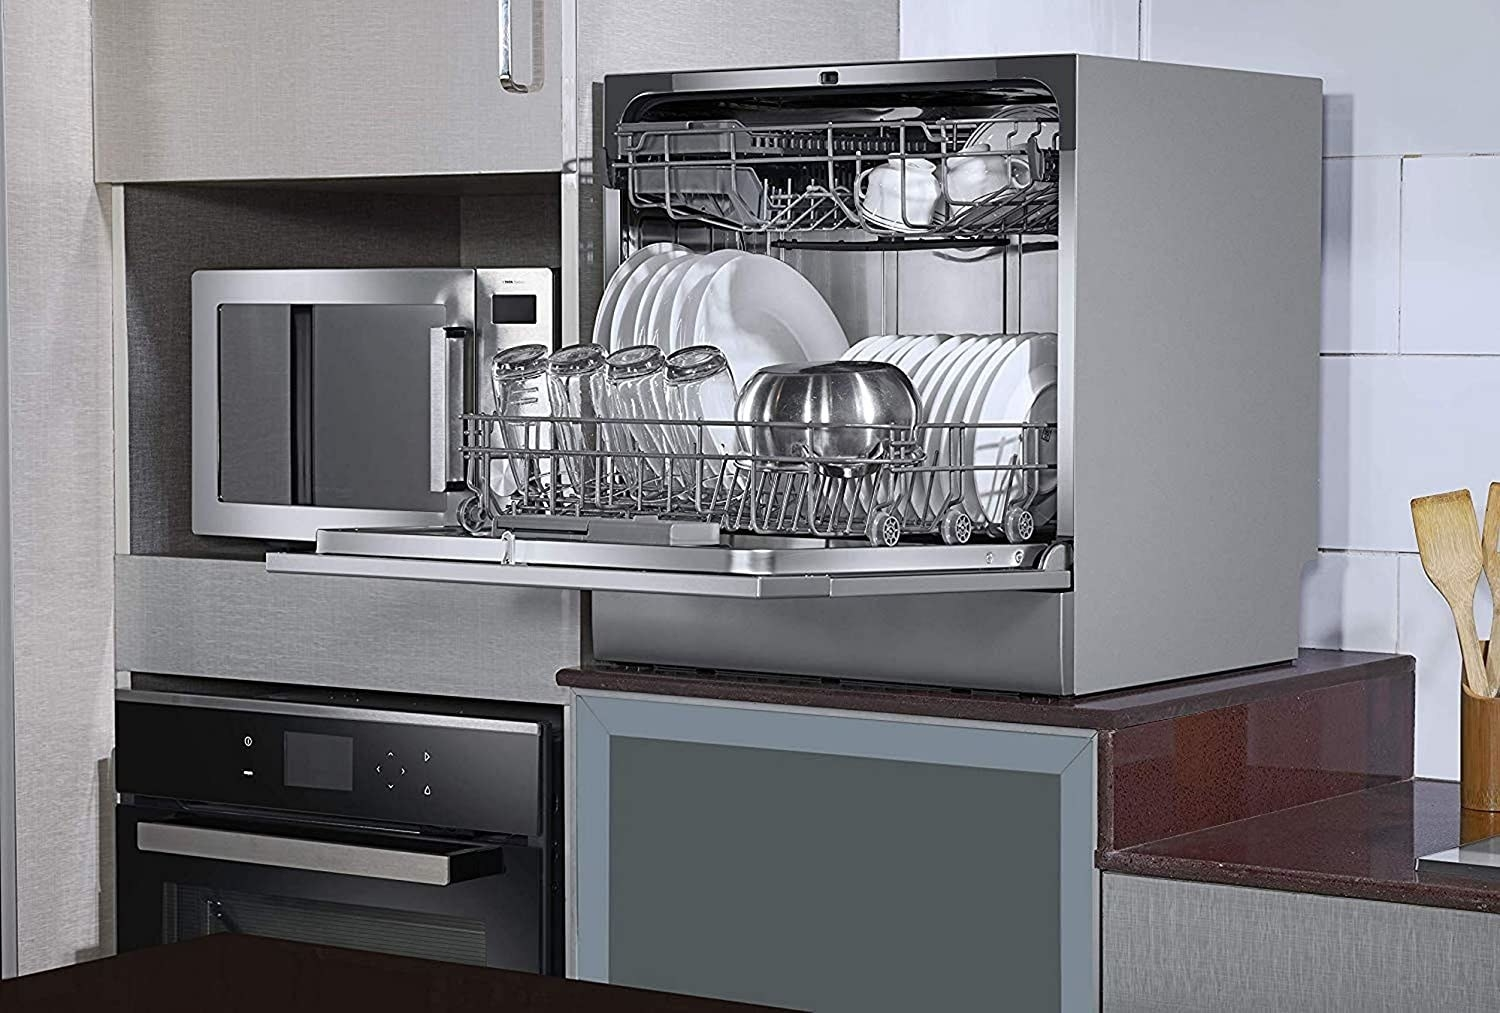 Dishwasher kept in the kitchen with utensils inside.